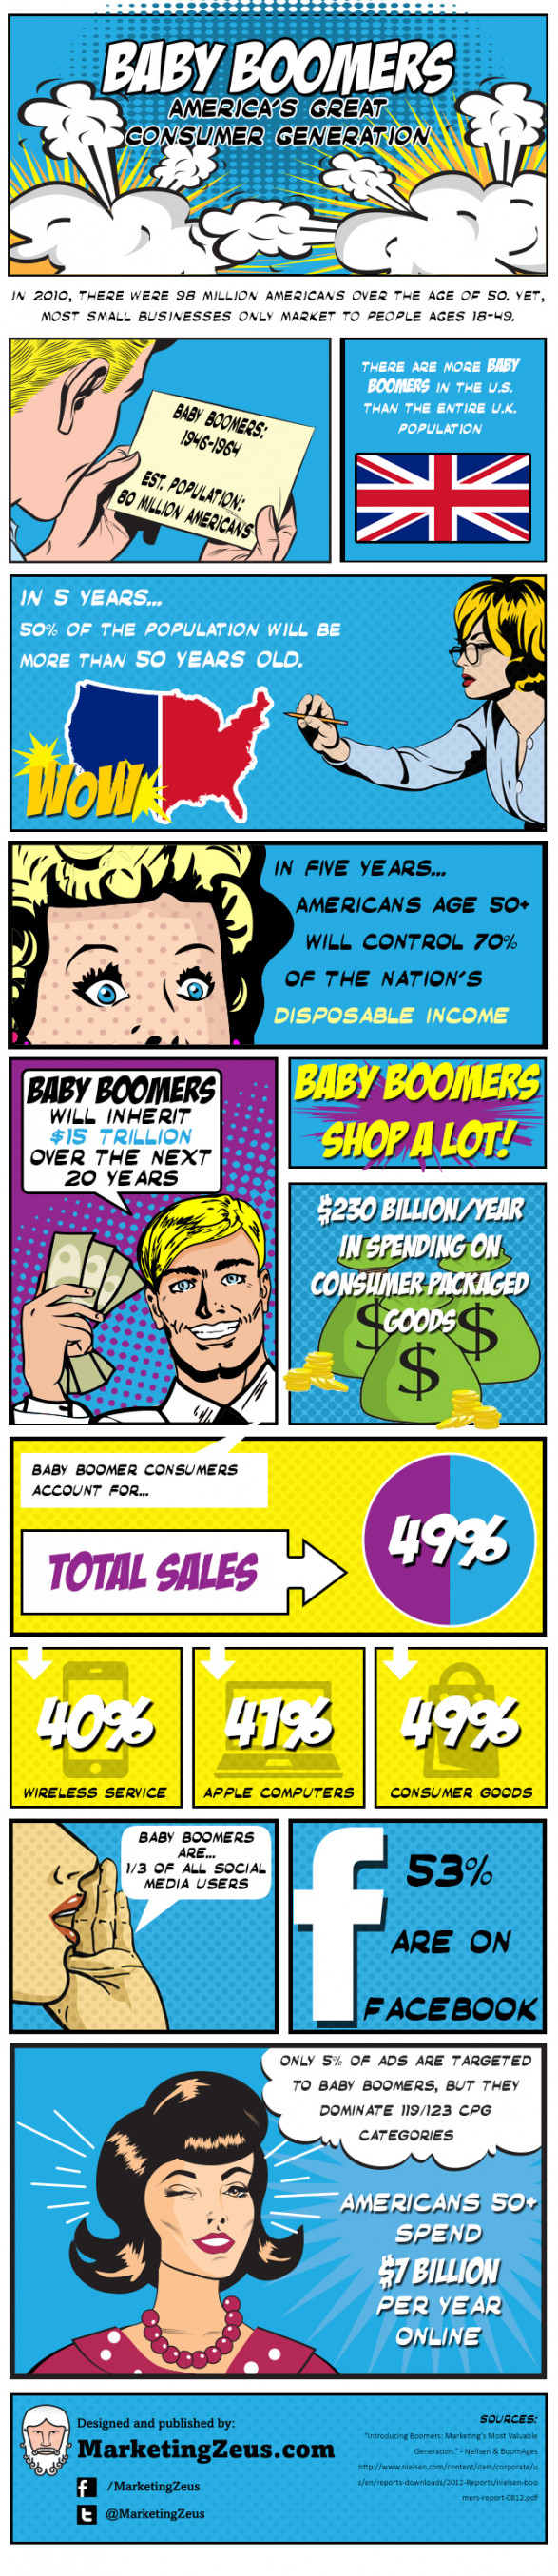 Baby Boomers: America